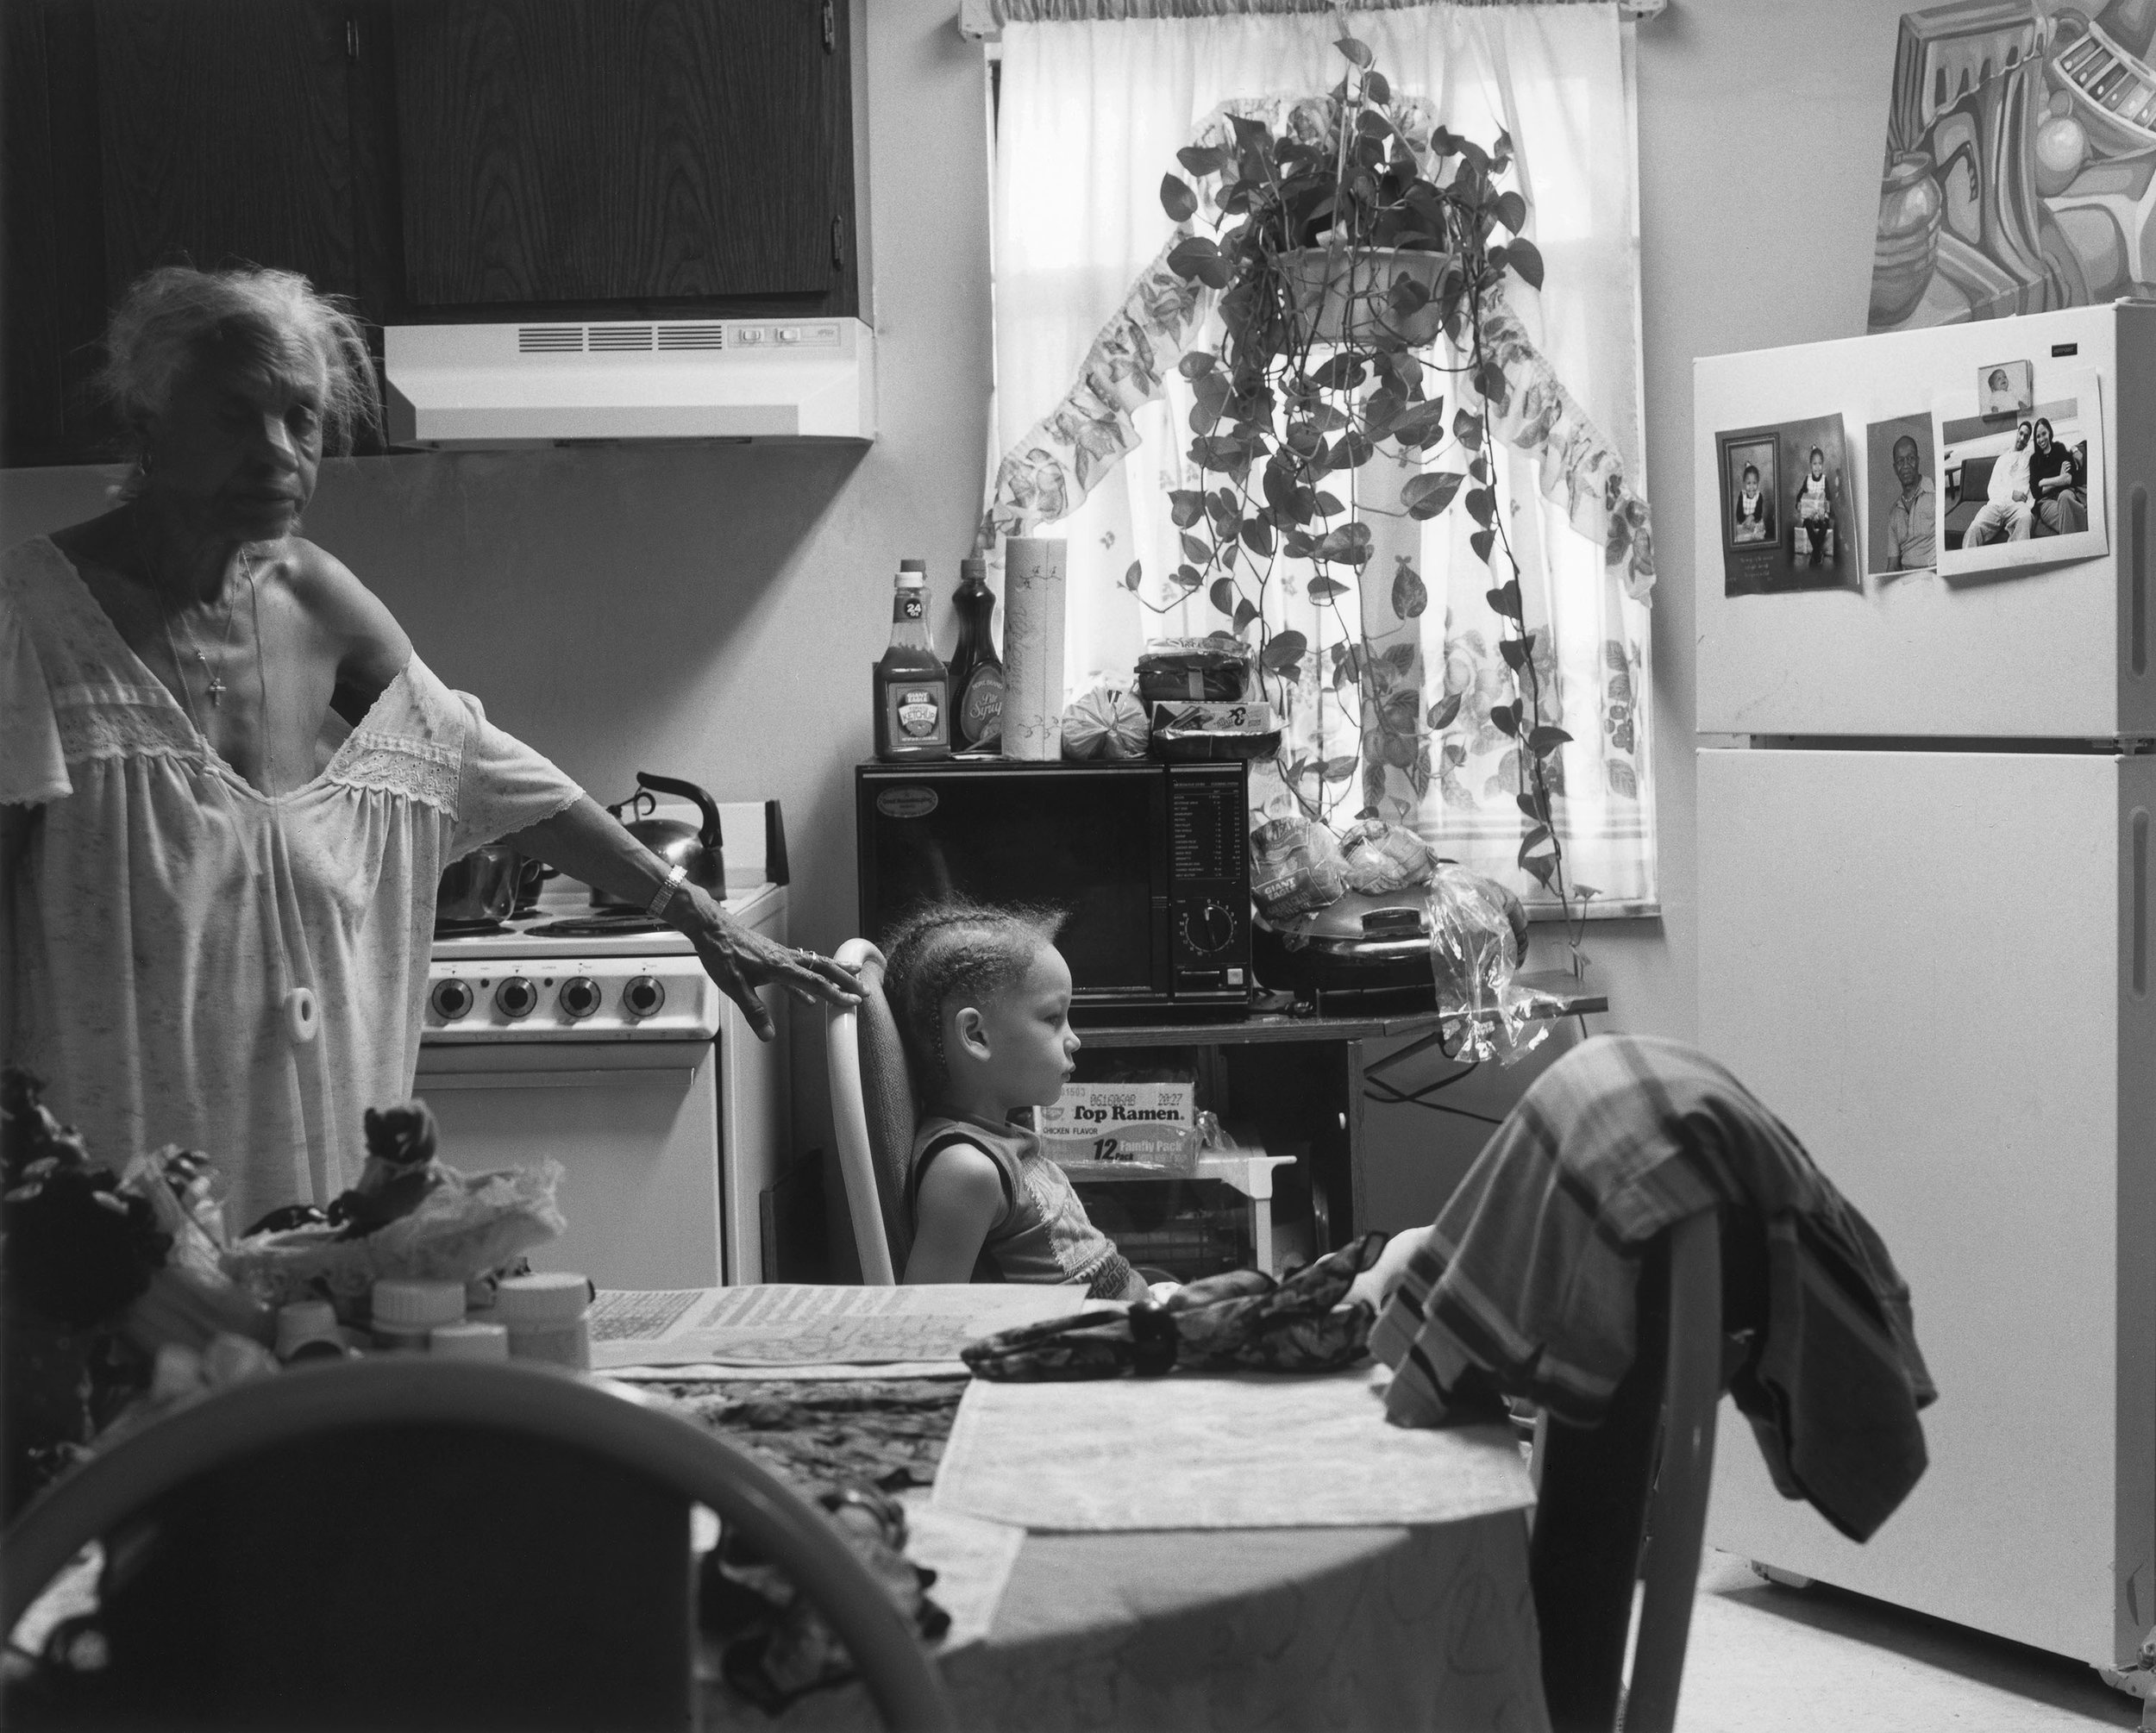 LaToya Ruby Frazier,  Grandma Ruby and J.C. in Her Kitchen , 2006, from  The Notion of Family  (Aperture, 2014)